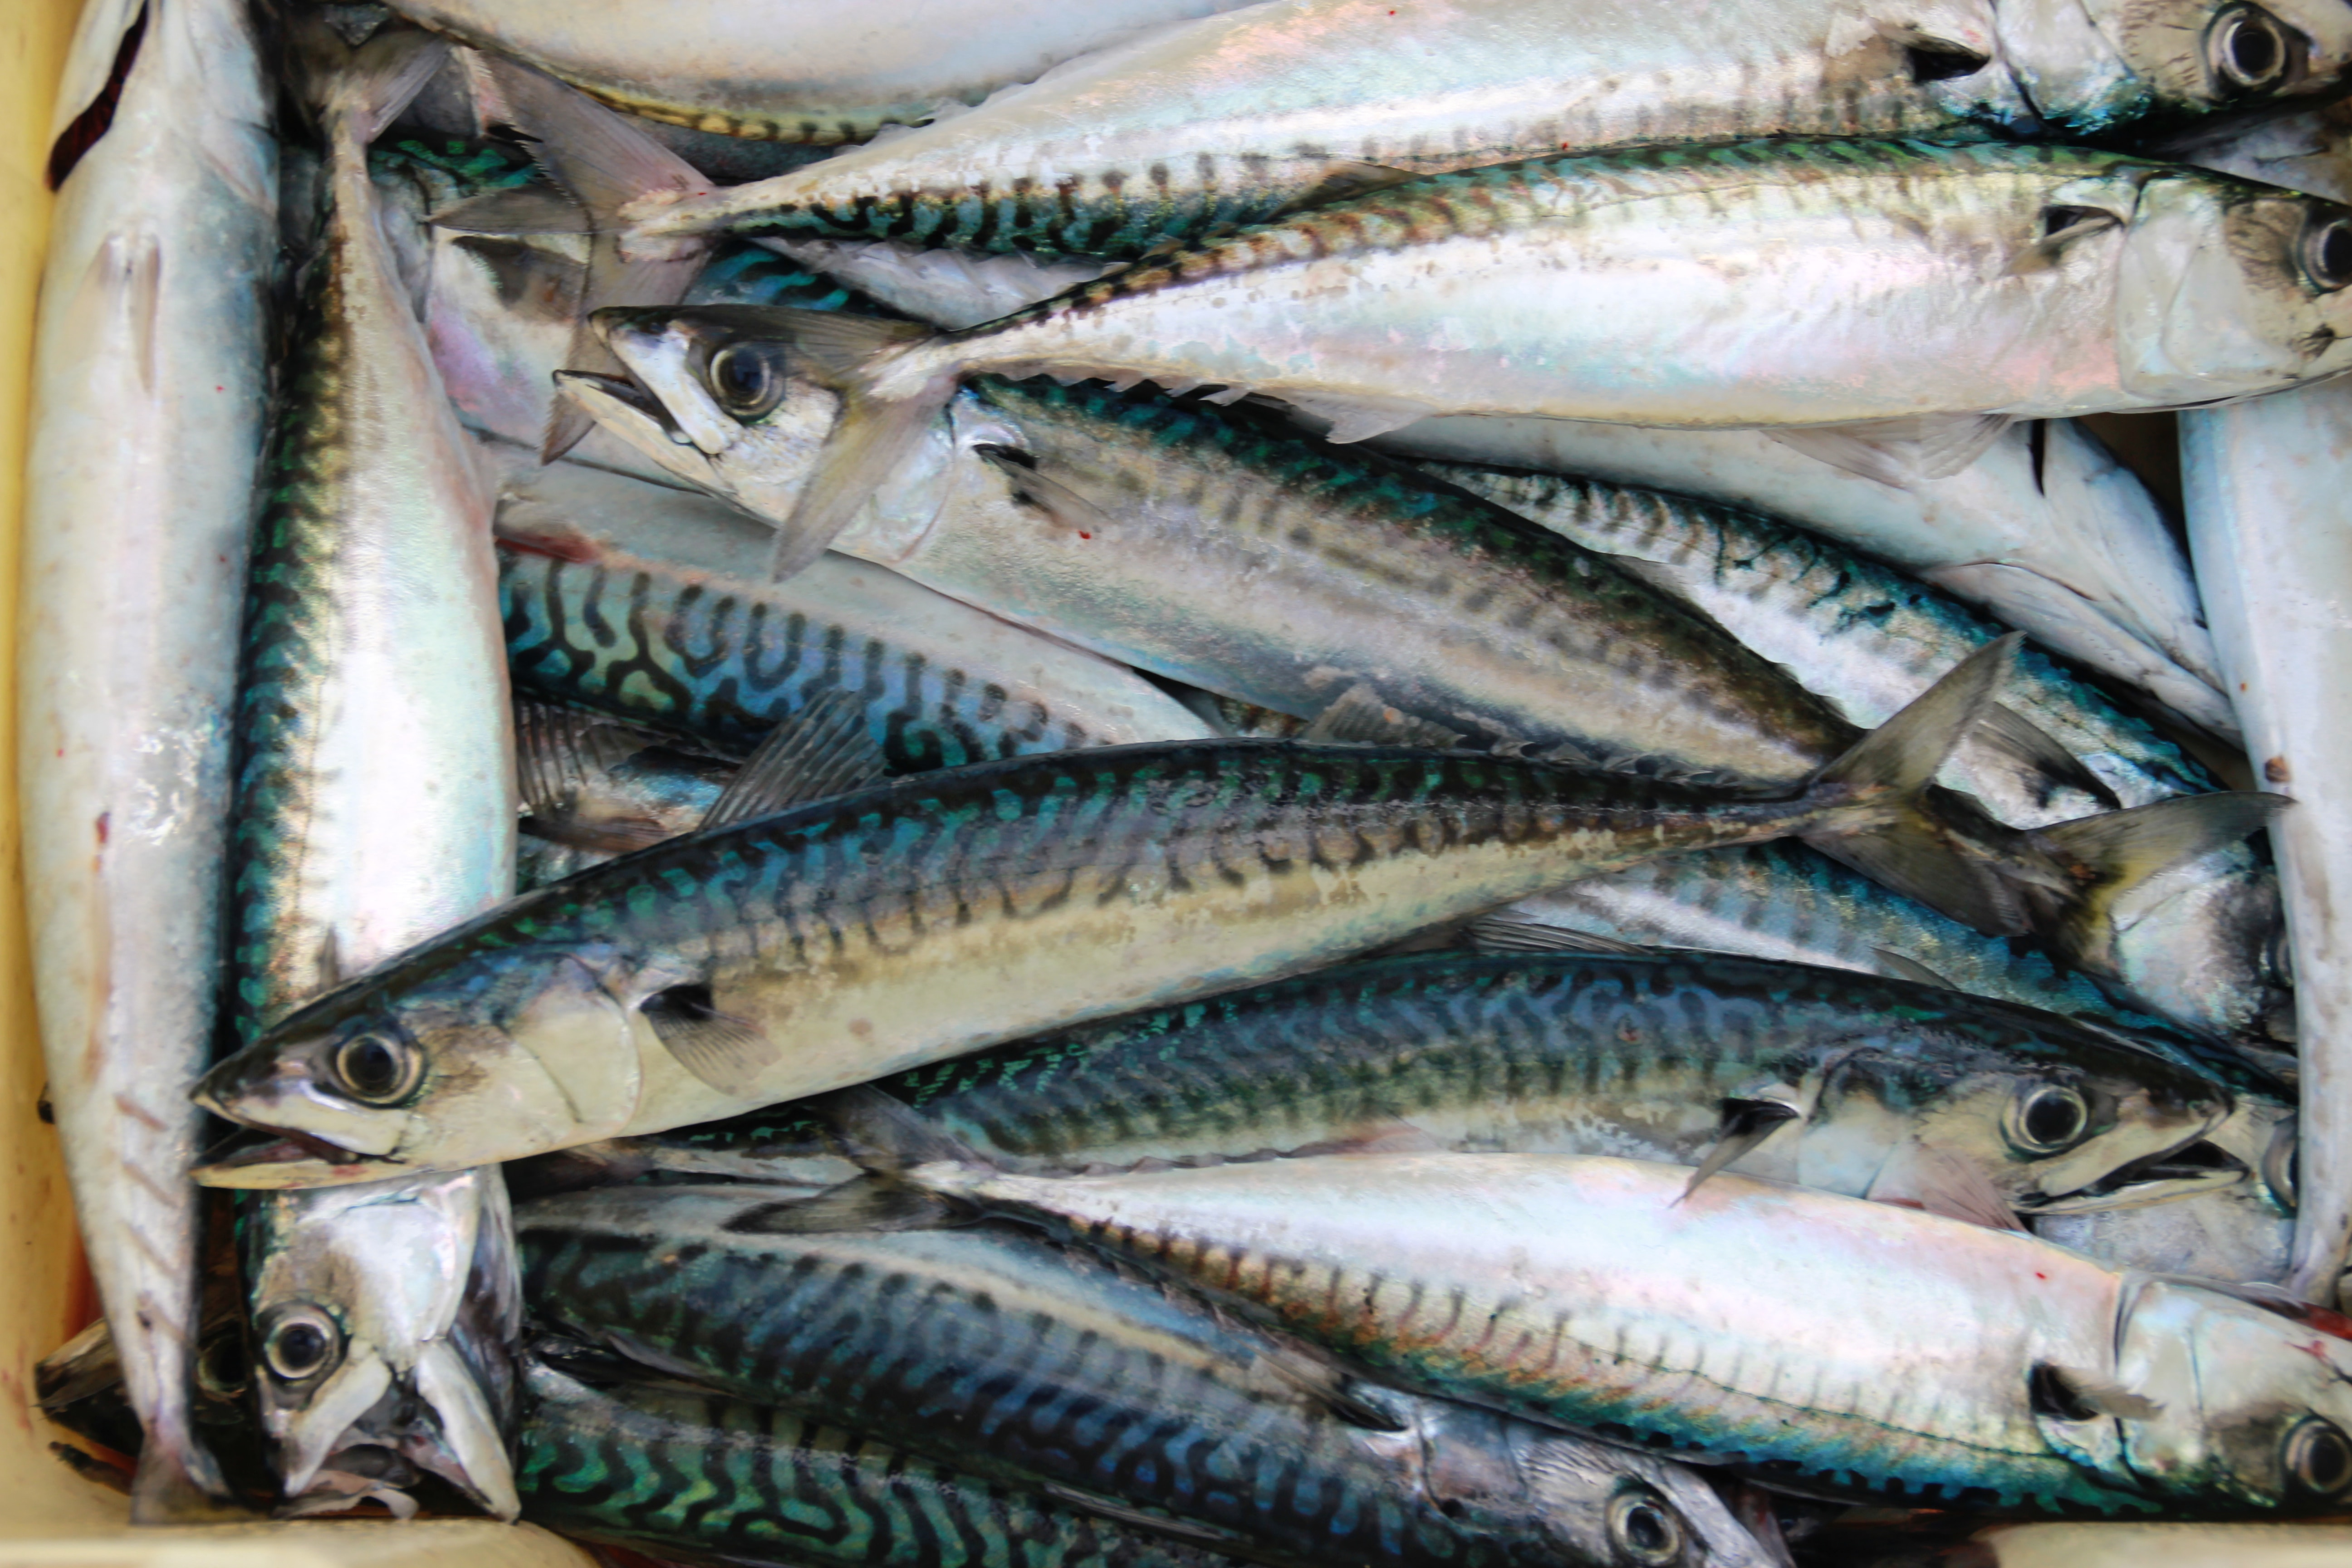 Atlantic Mackerel sitting in a fish tray